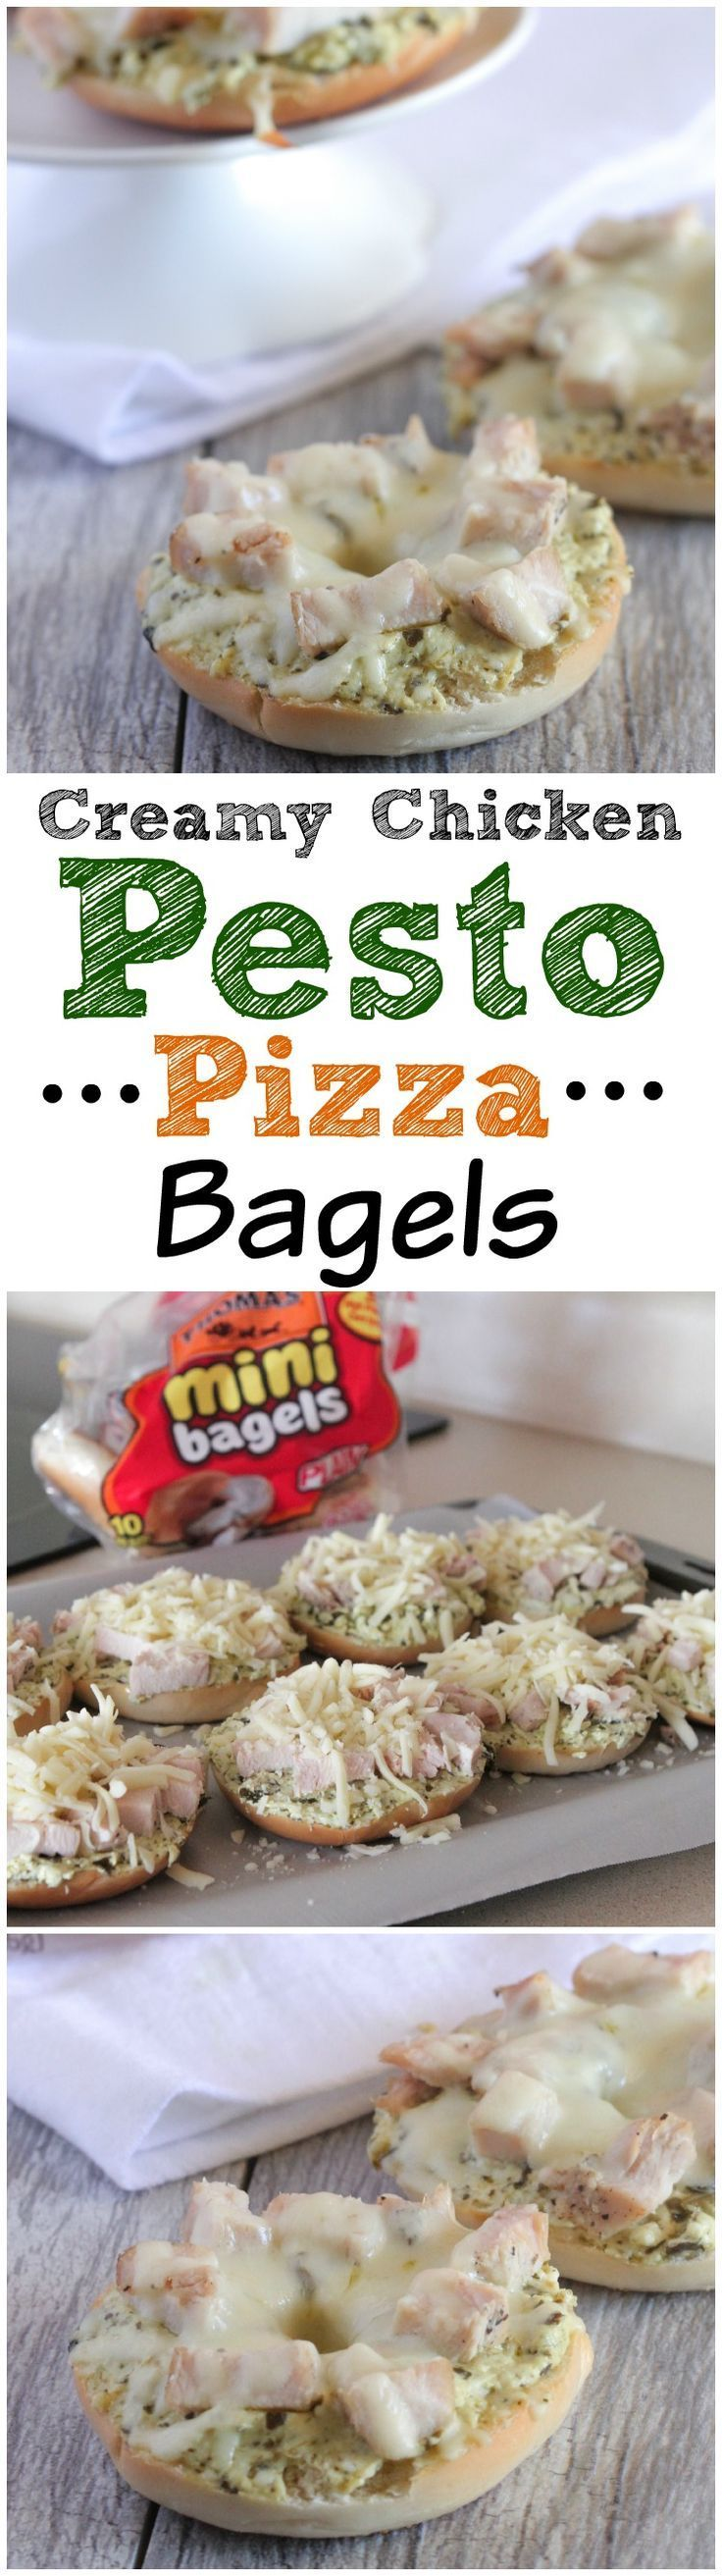 Creamy Chicken Pesto Pizza Bagels!  The perfect snack packed with great flavor! #recipe #pizza